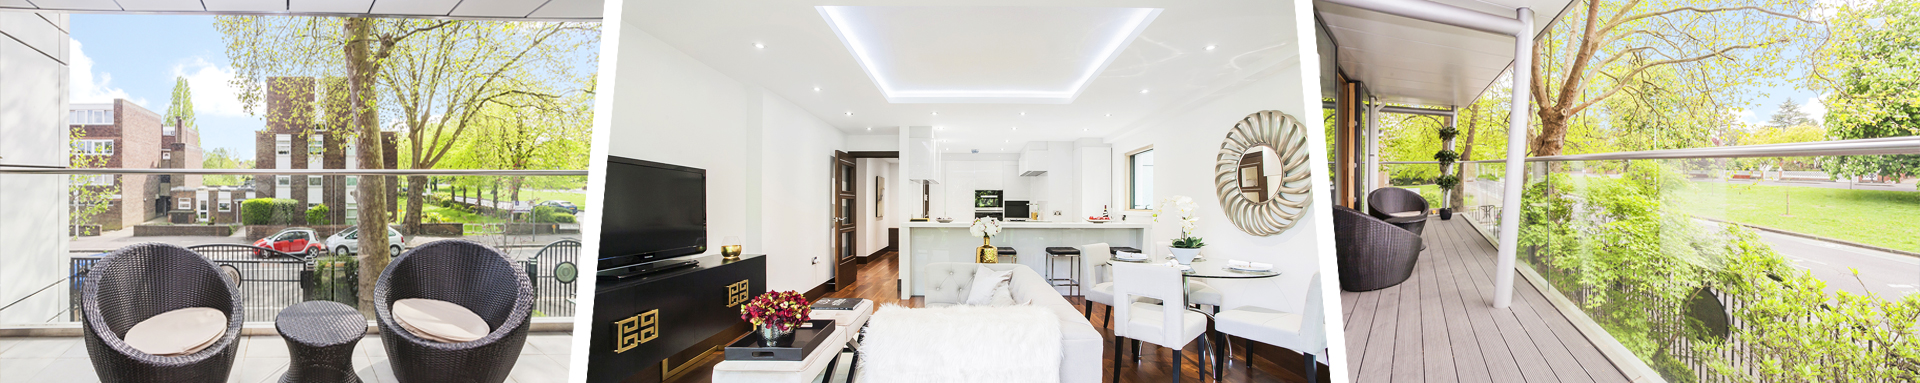 Apartment for Sale in London - Centurion Court South Woodford East London